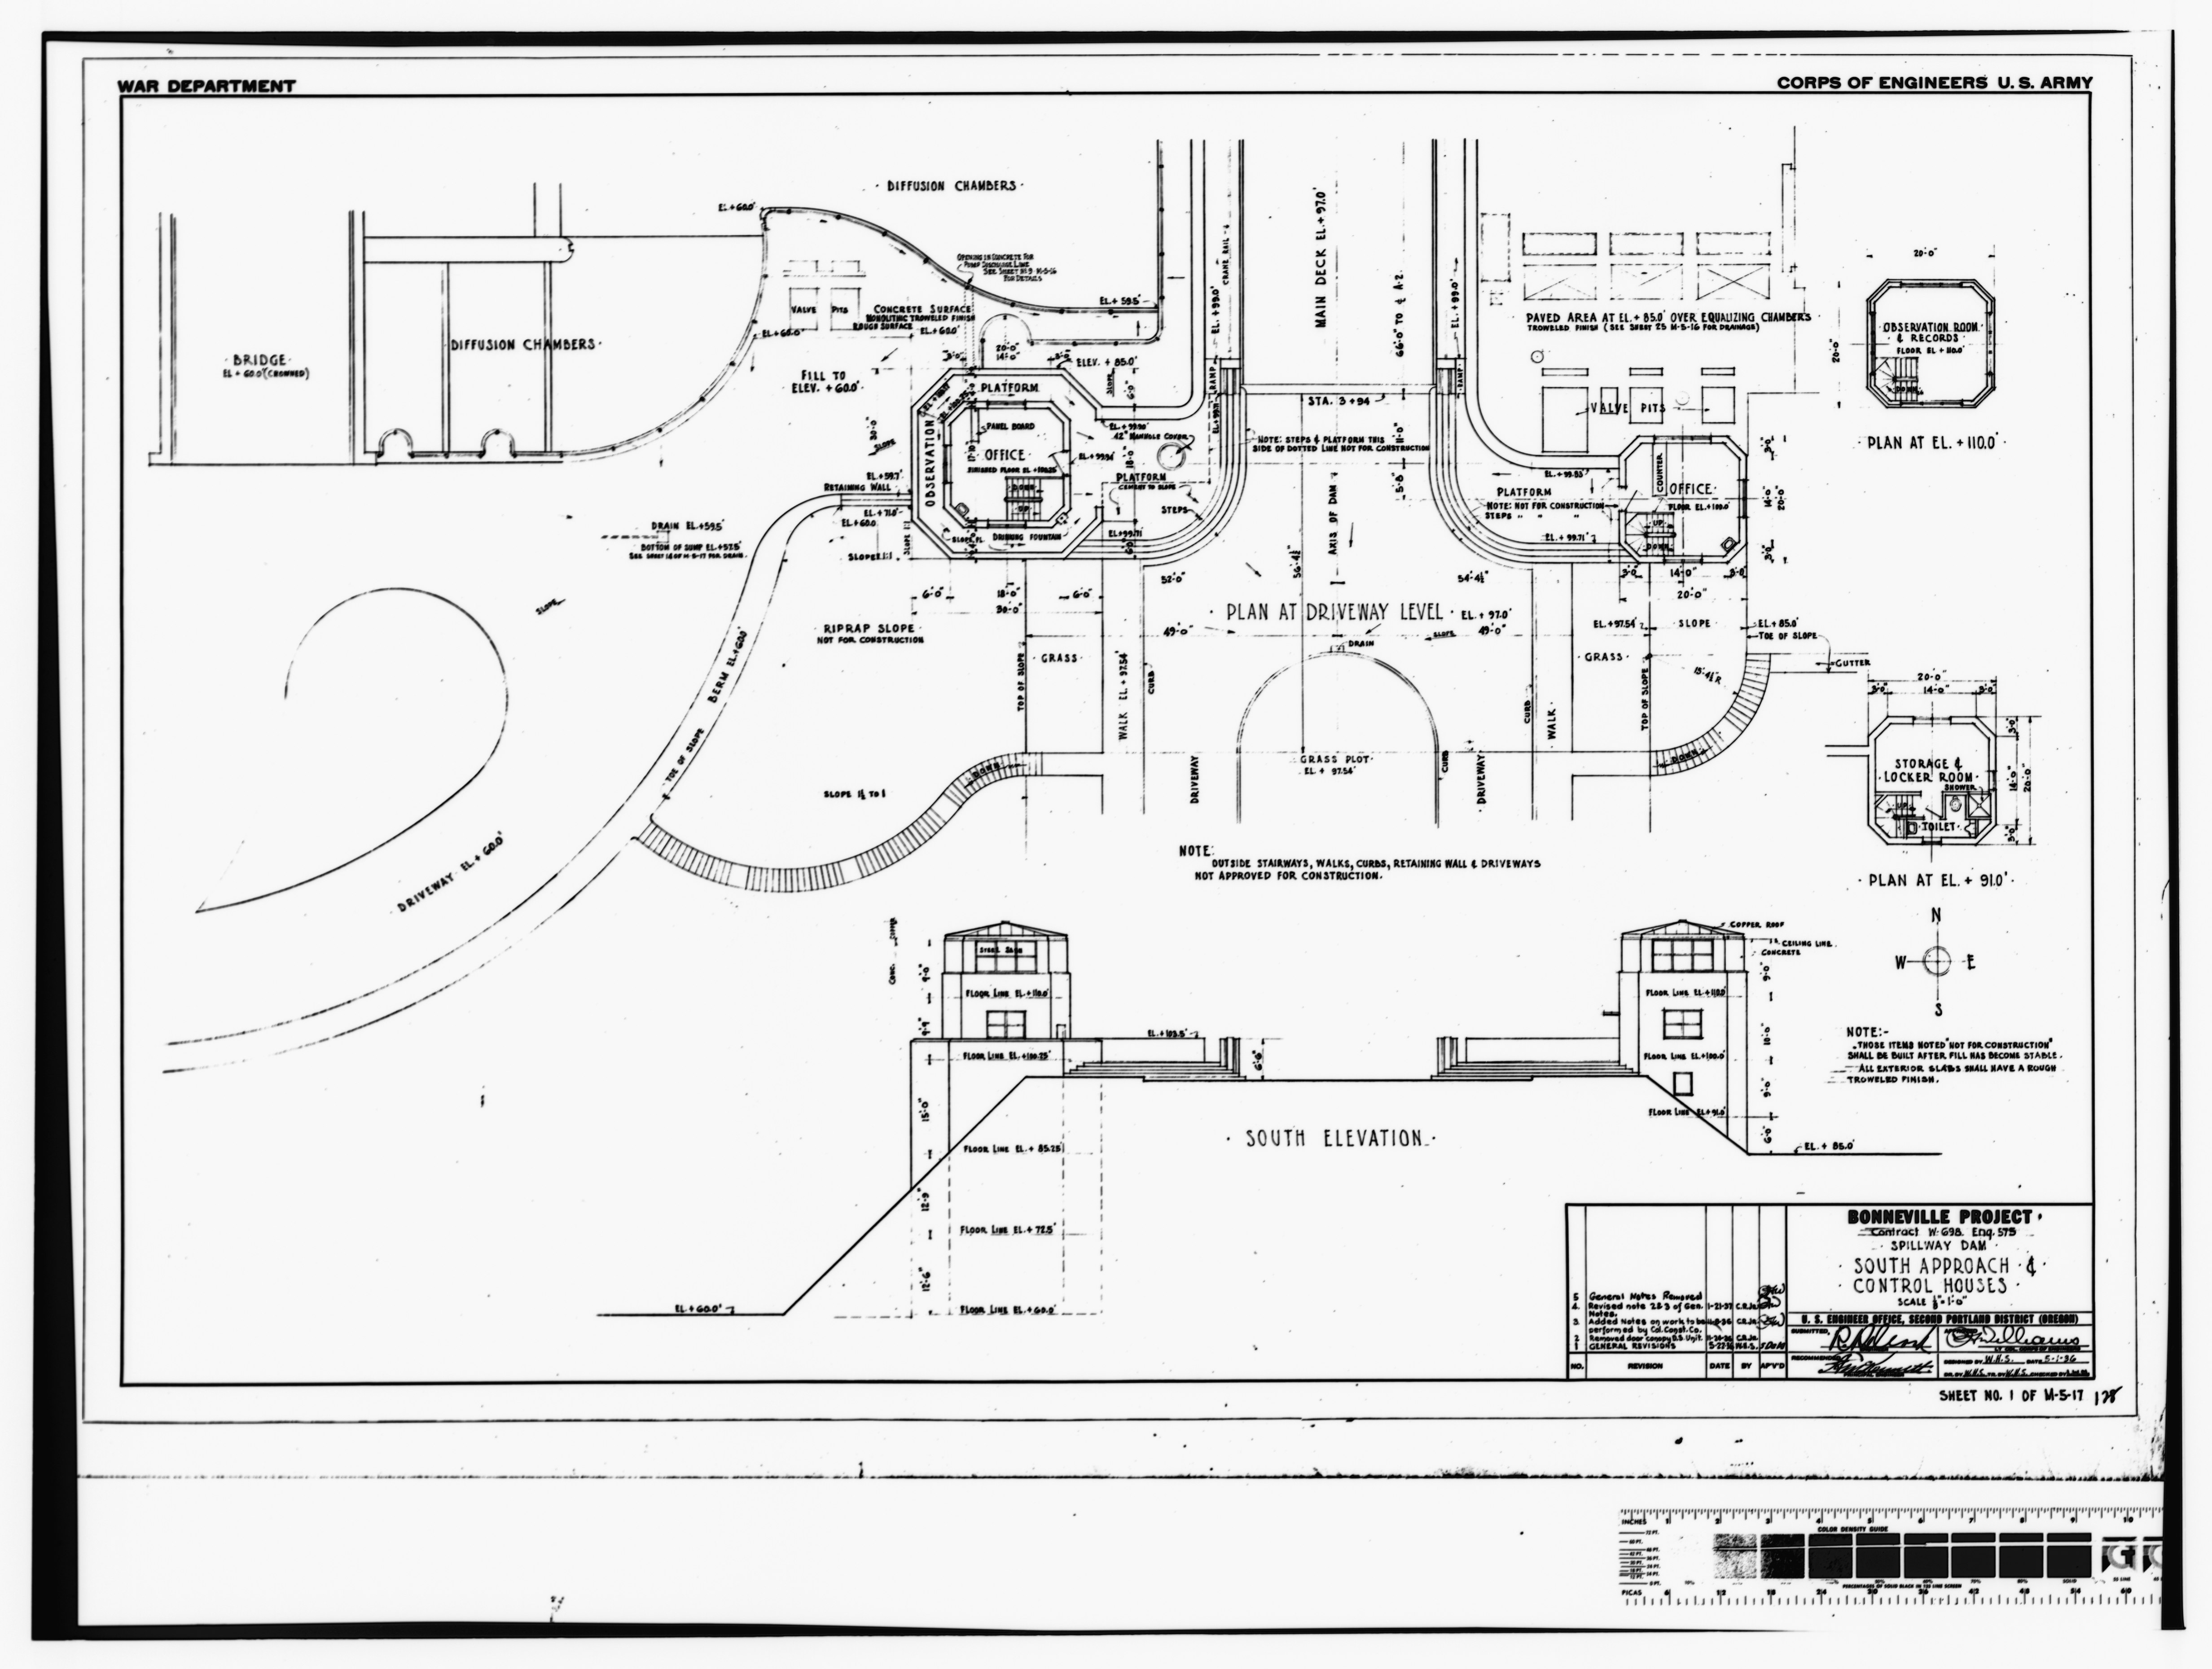 File Photocopy Of Original Construction Drawing 1 May